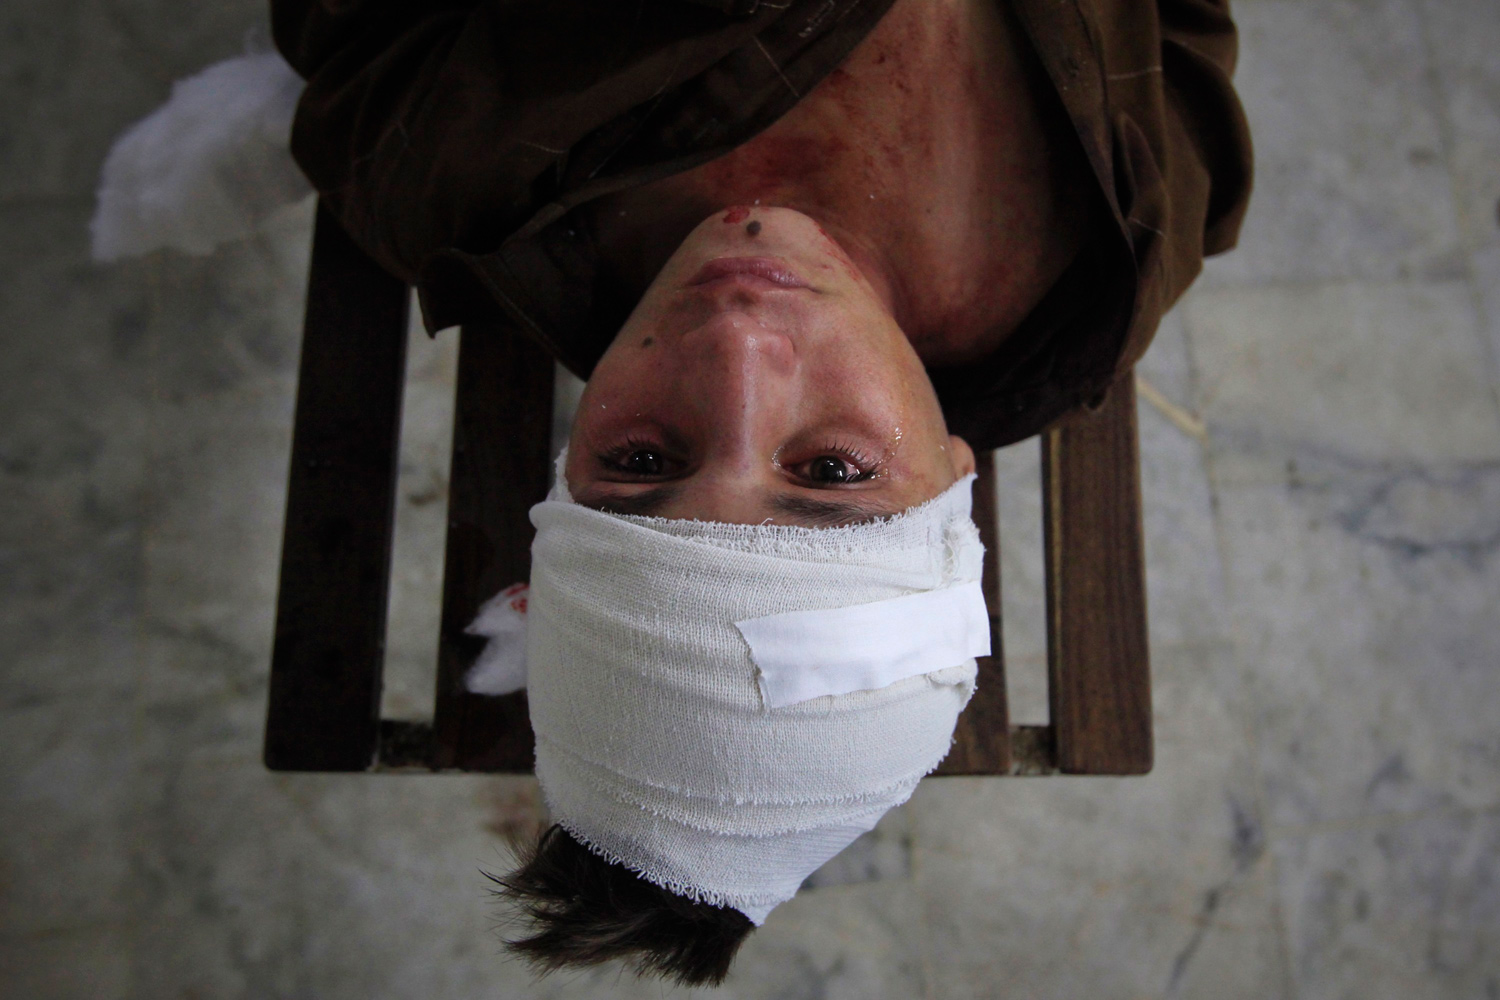 September 13, 2011. A tear runs down a boy's face as he lies on a bench after being treated for his injuries at the Lady Reading Hospital in Peshawar, Pakistan.